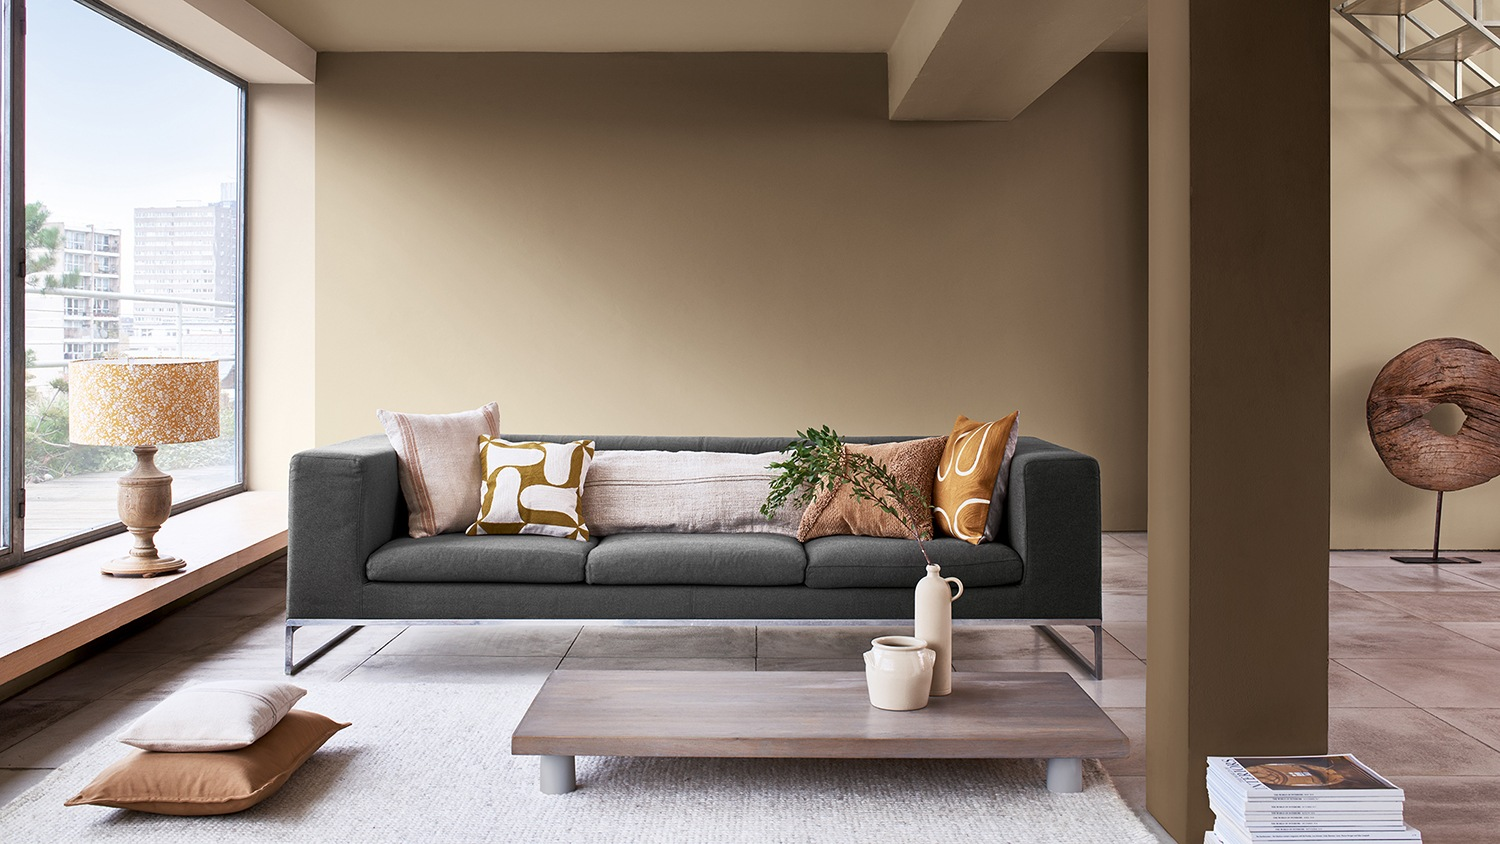 sofa gris con pared verde ocre